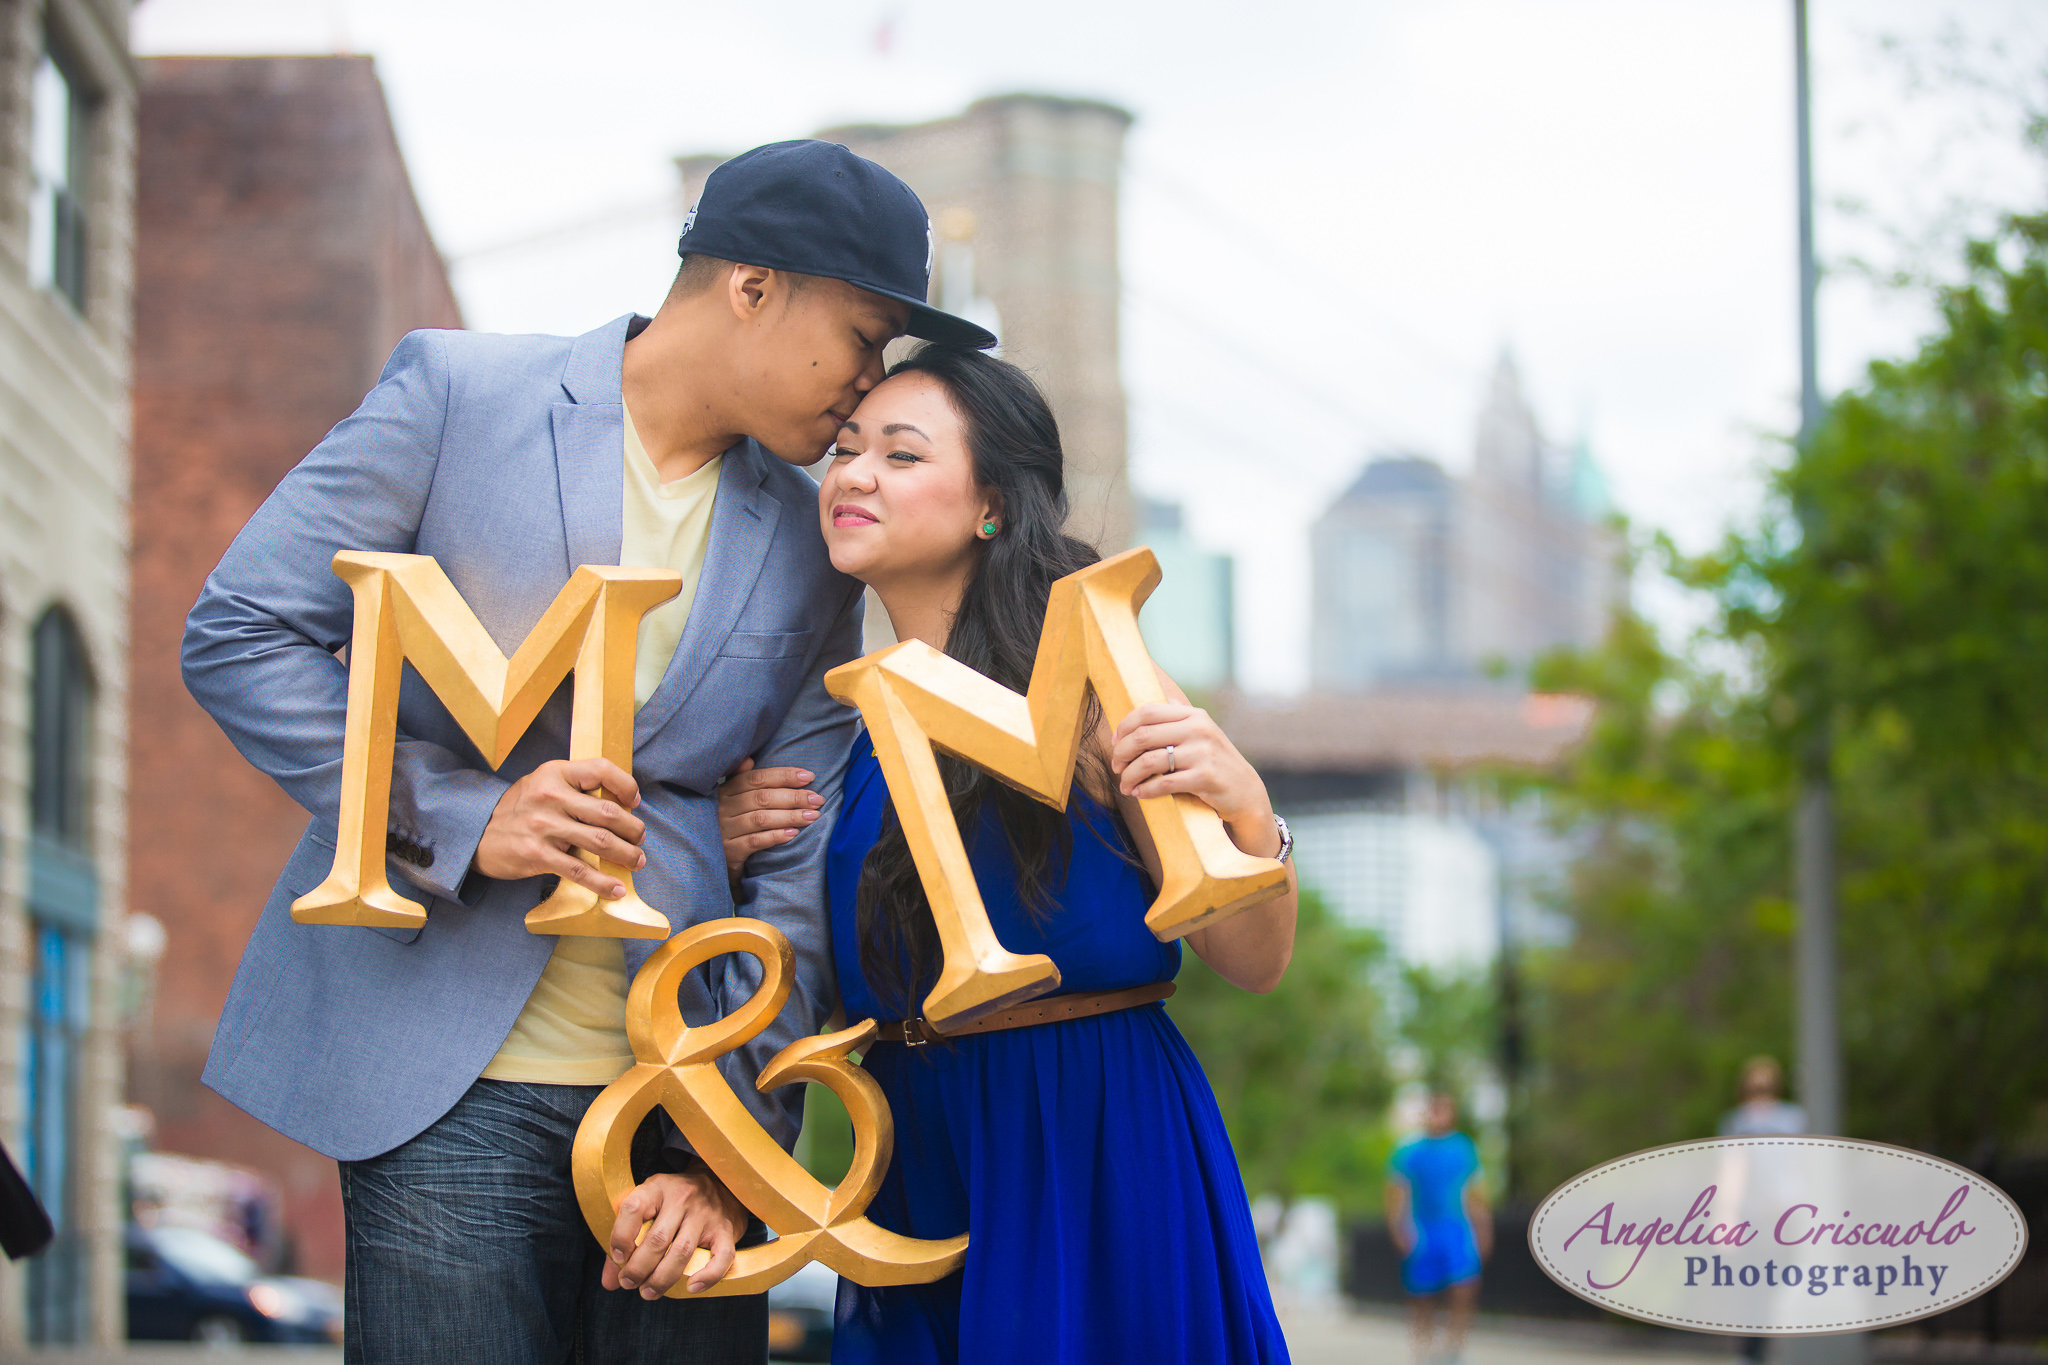 Engagement photo ideas with Brooklyn Bridge